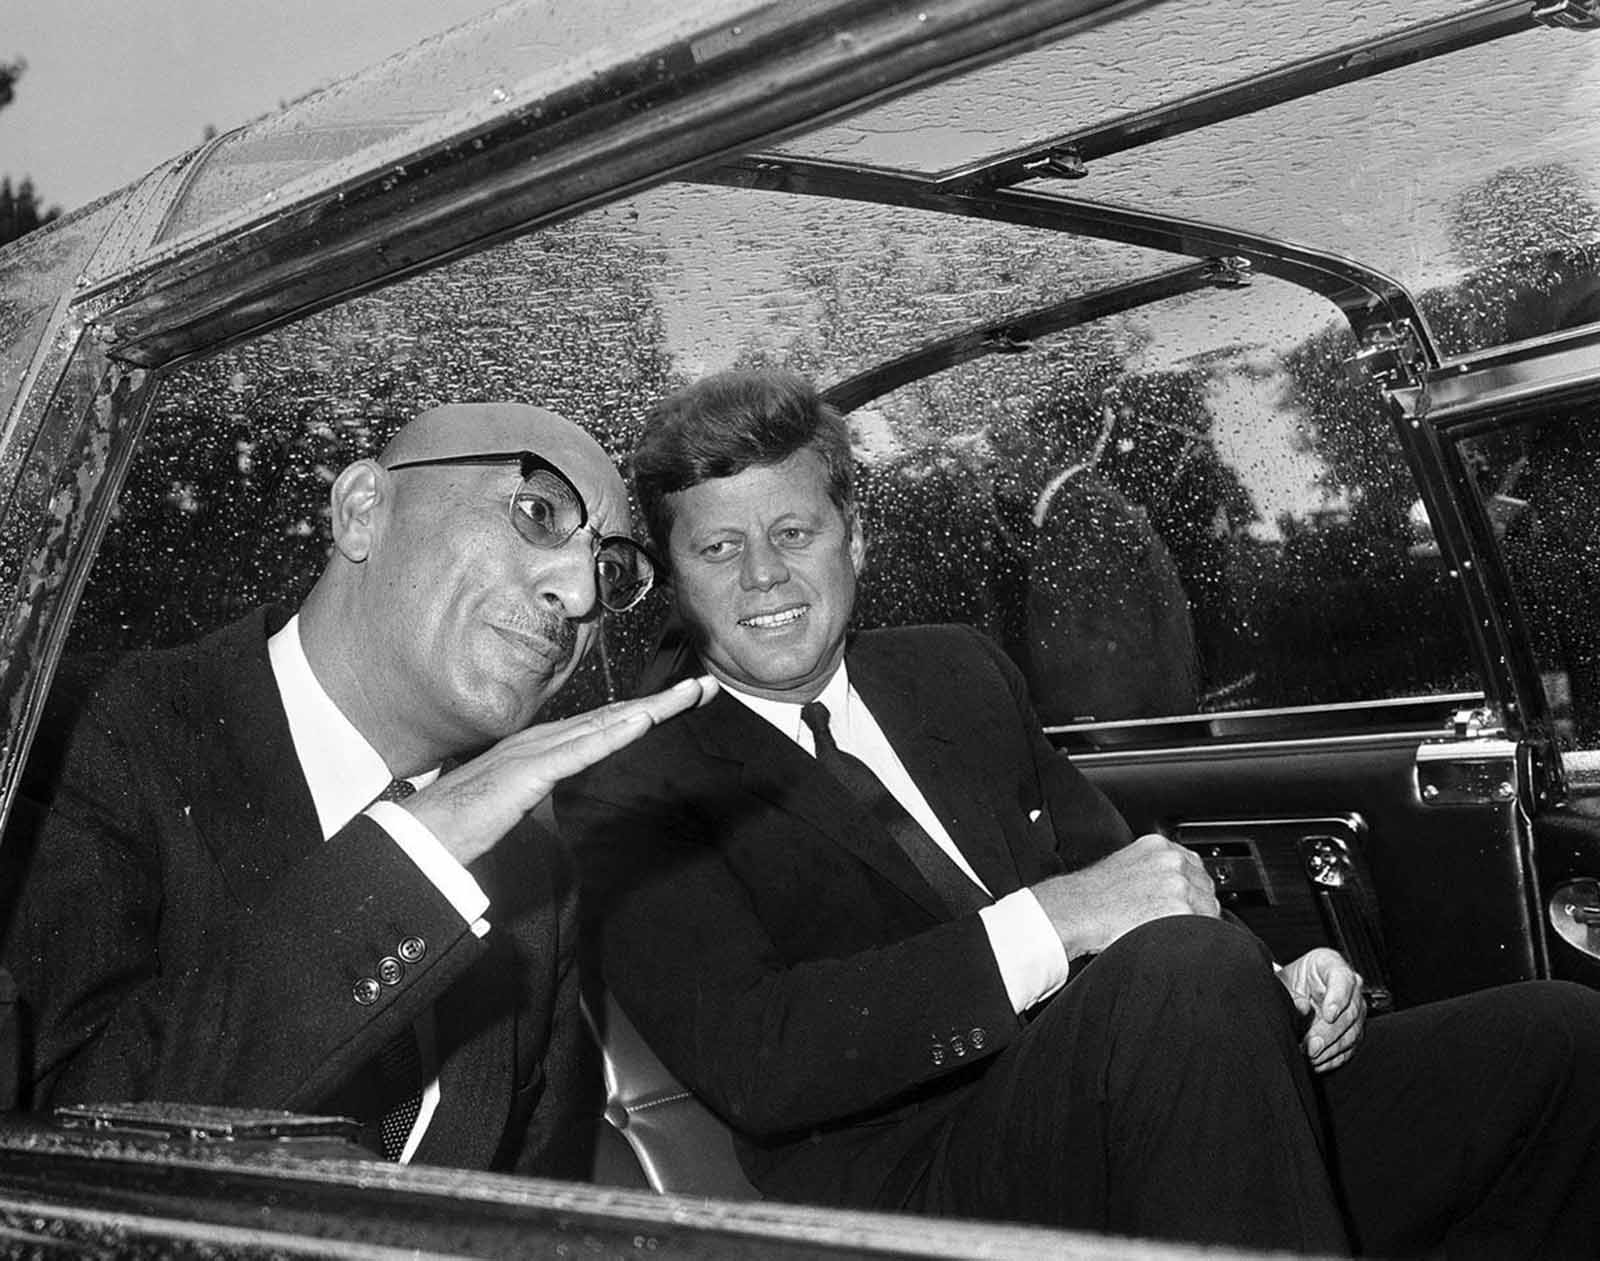 In Washington, District of Columbia, Afghan King Mohammad Zahir Shah talks with US President John F. Kennedy in the car that took them to the White House on September 8, 1963.